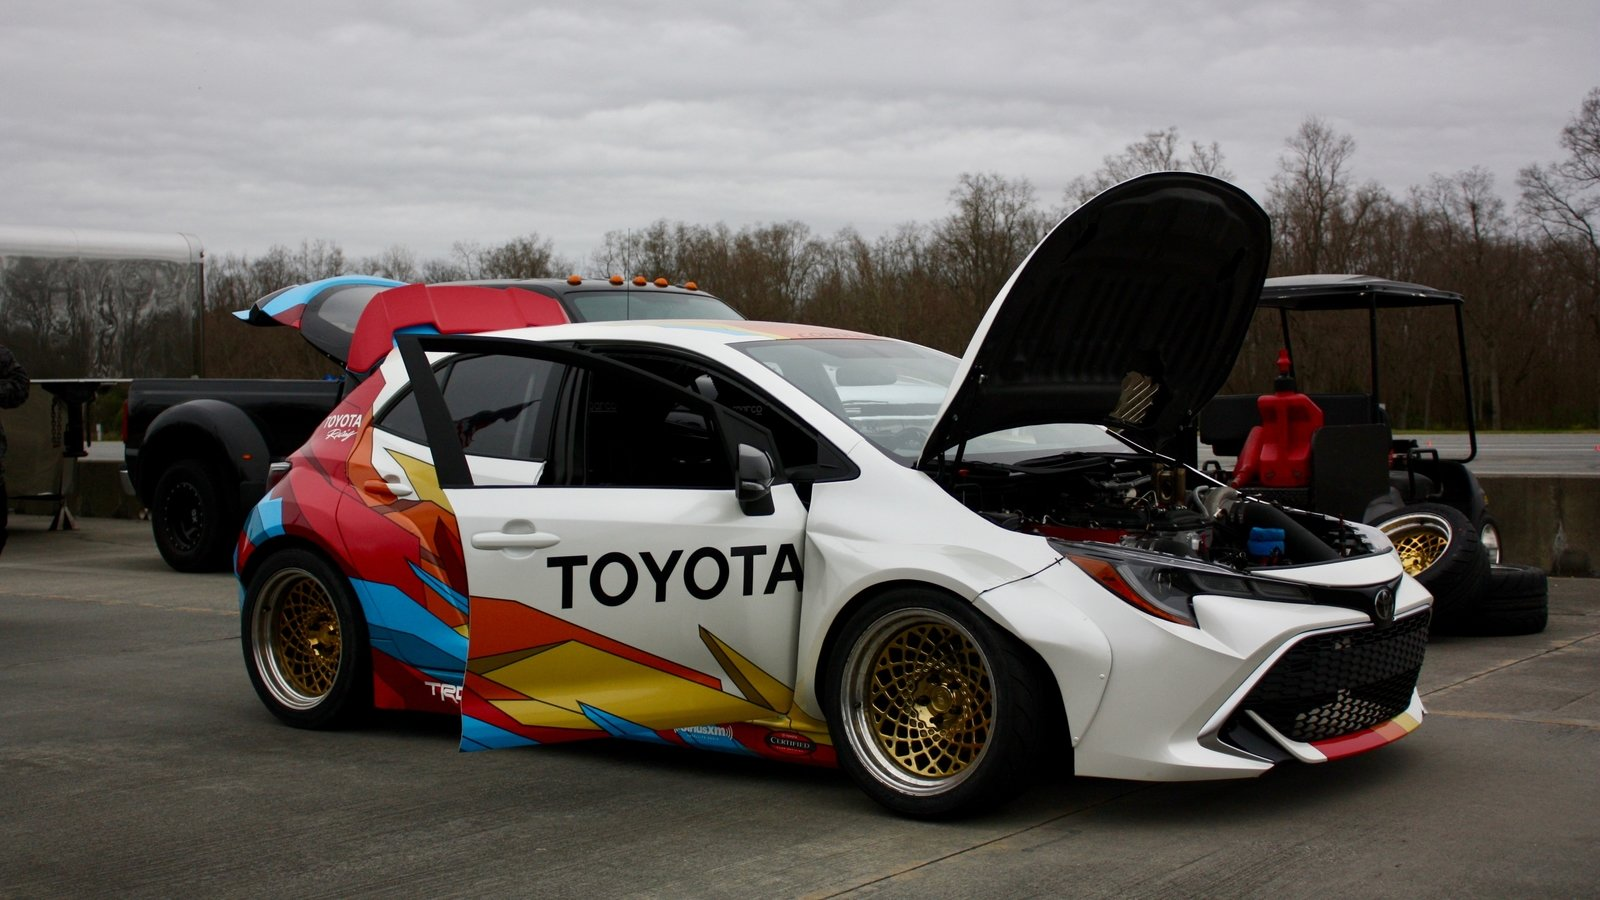 2019 Papadakis Racing Toyota Corolla Hatch Formula Drift ...